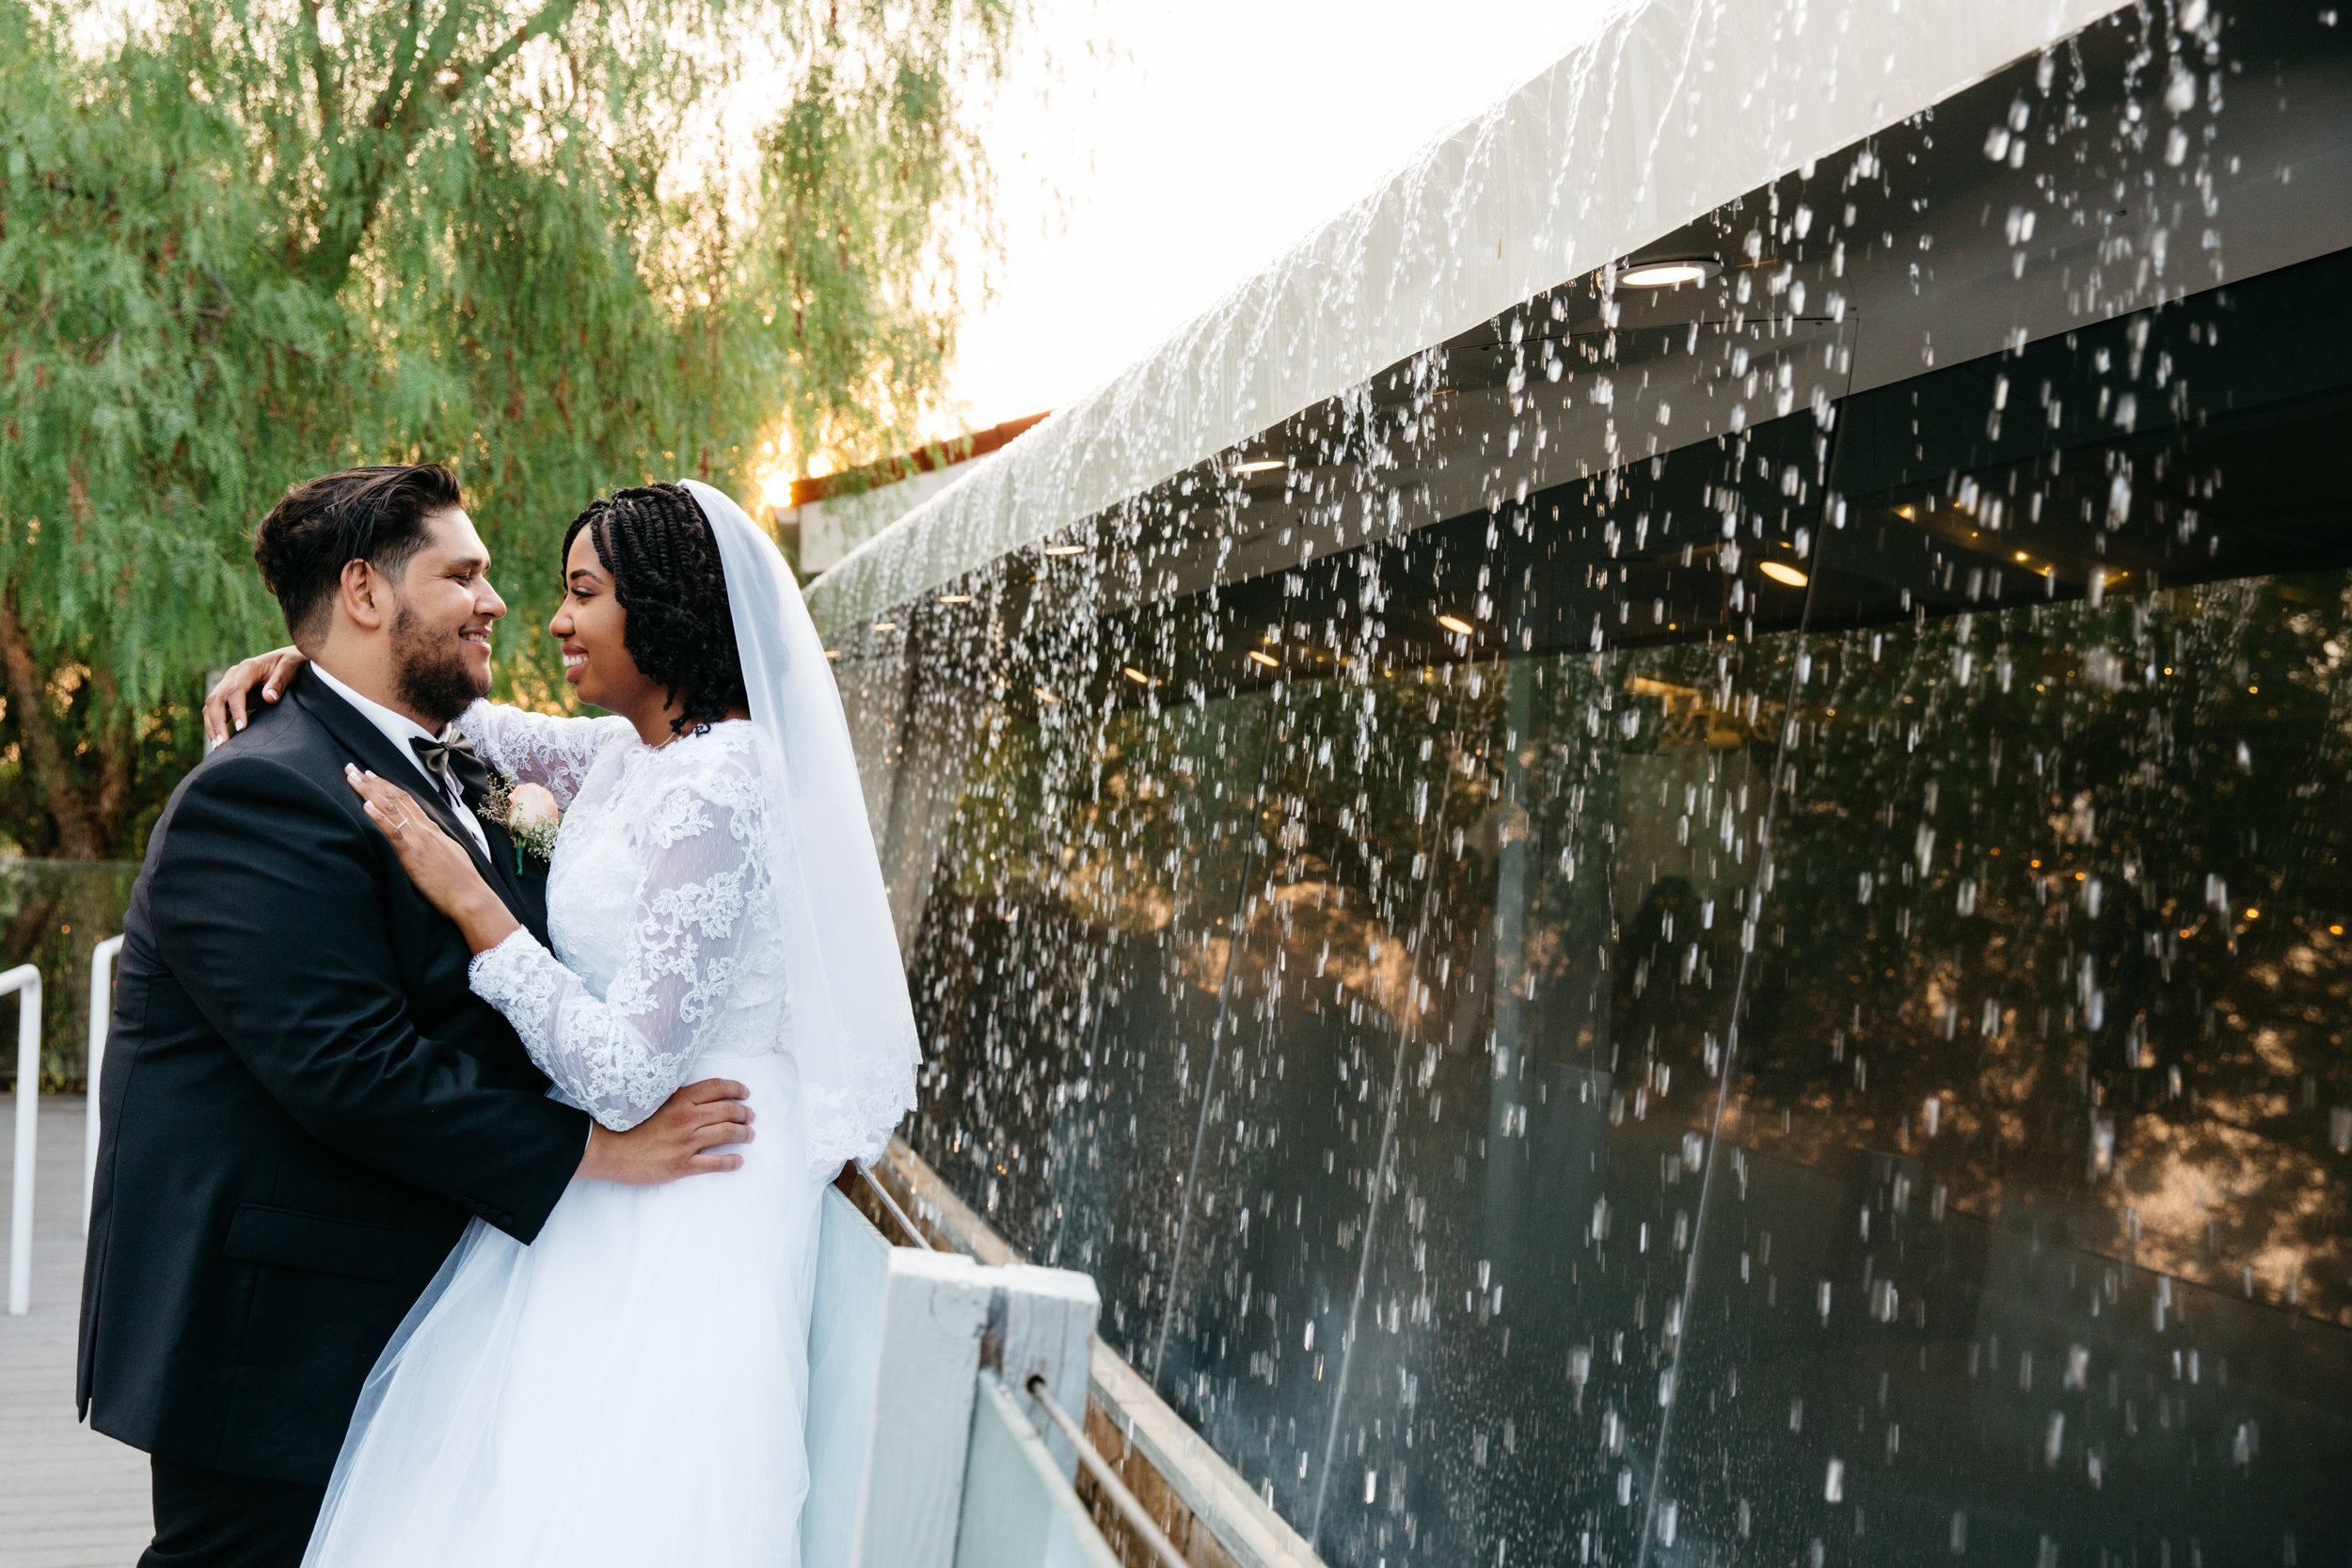 The Vineyard Wedding Jenna Bells and Laces Photography-55.jpg